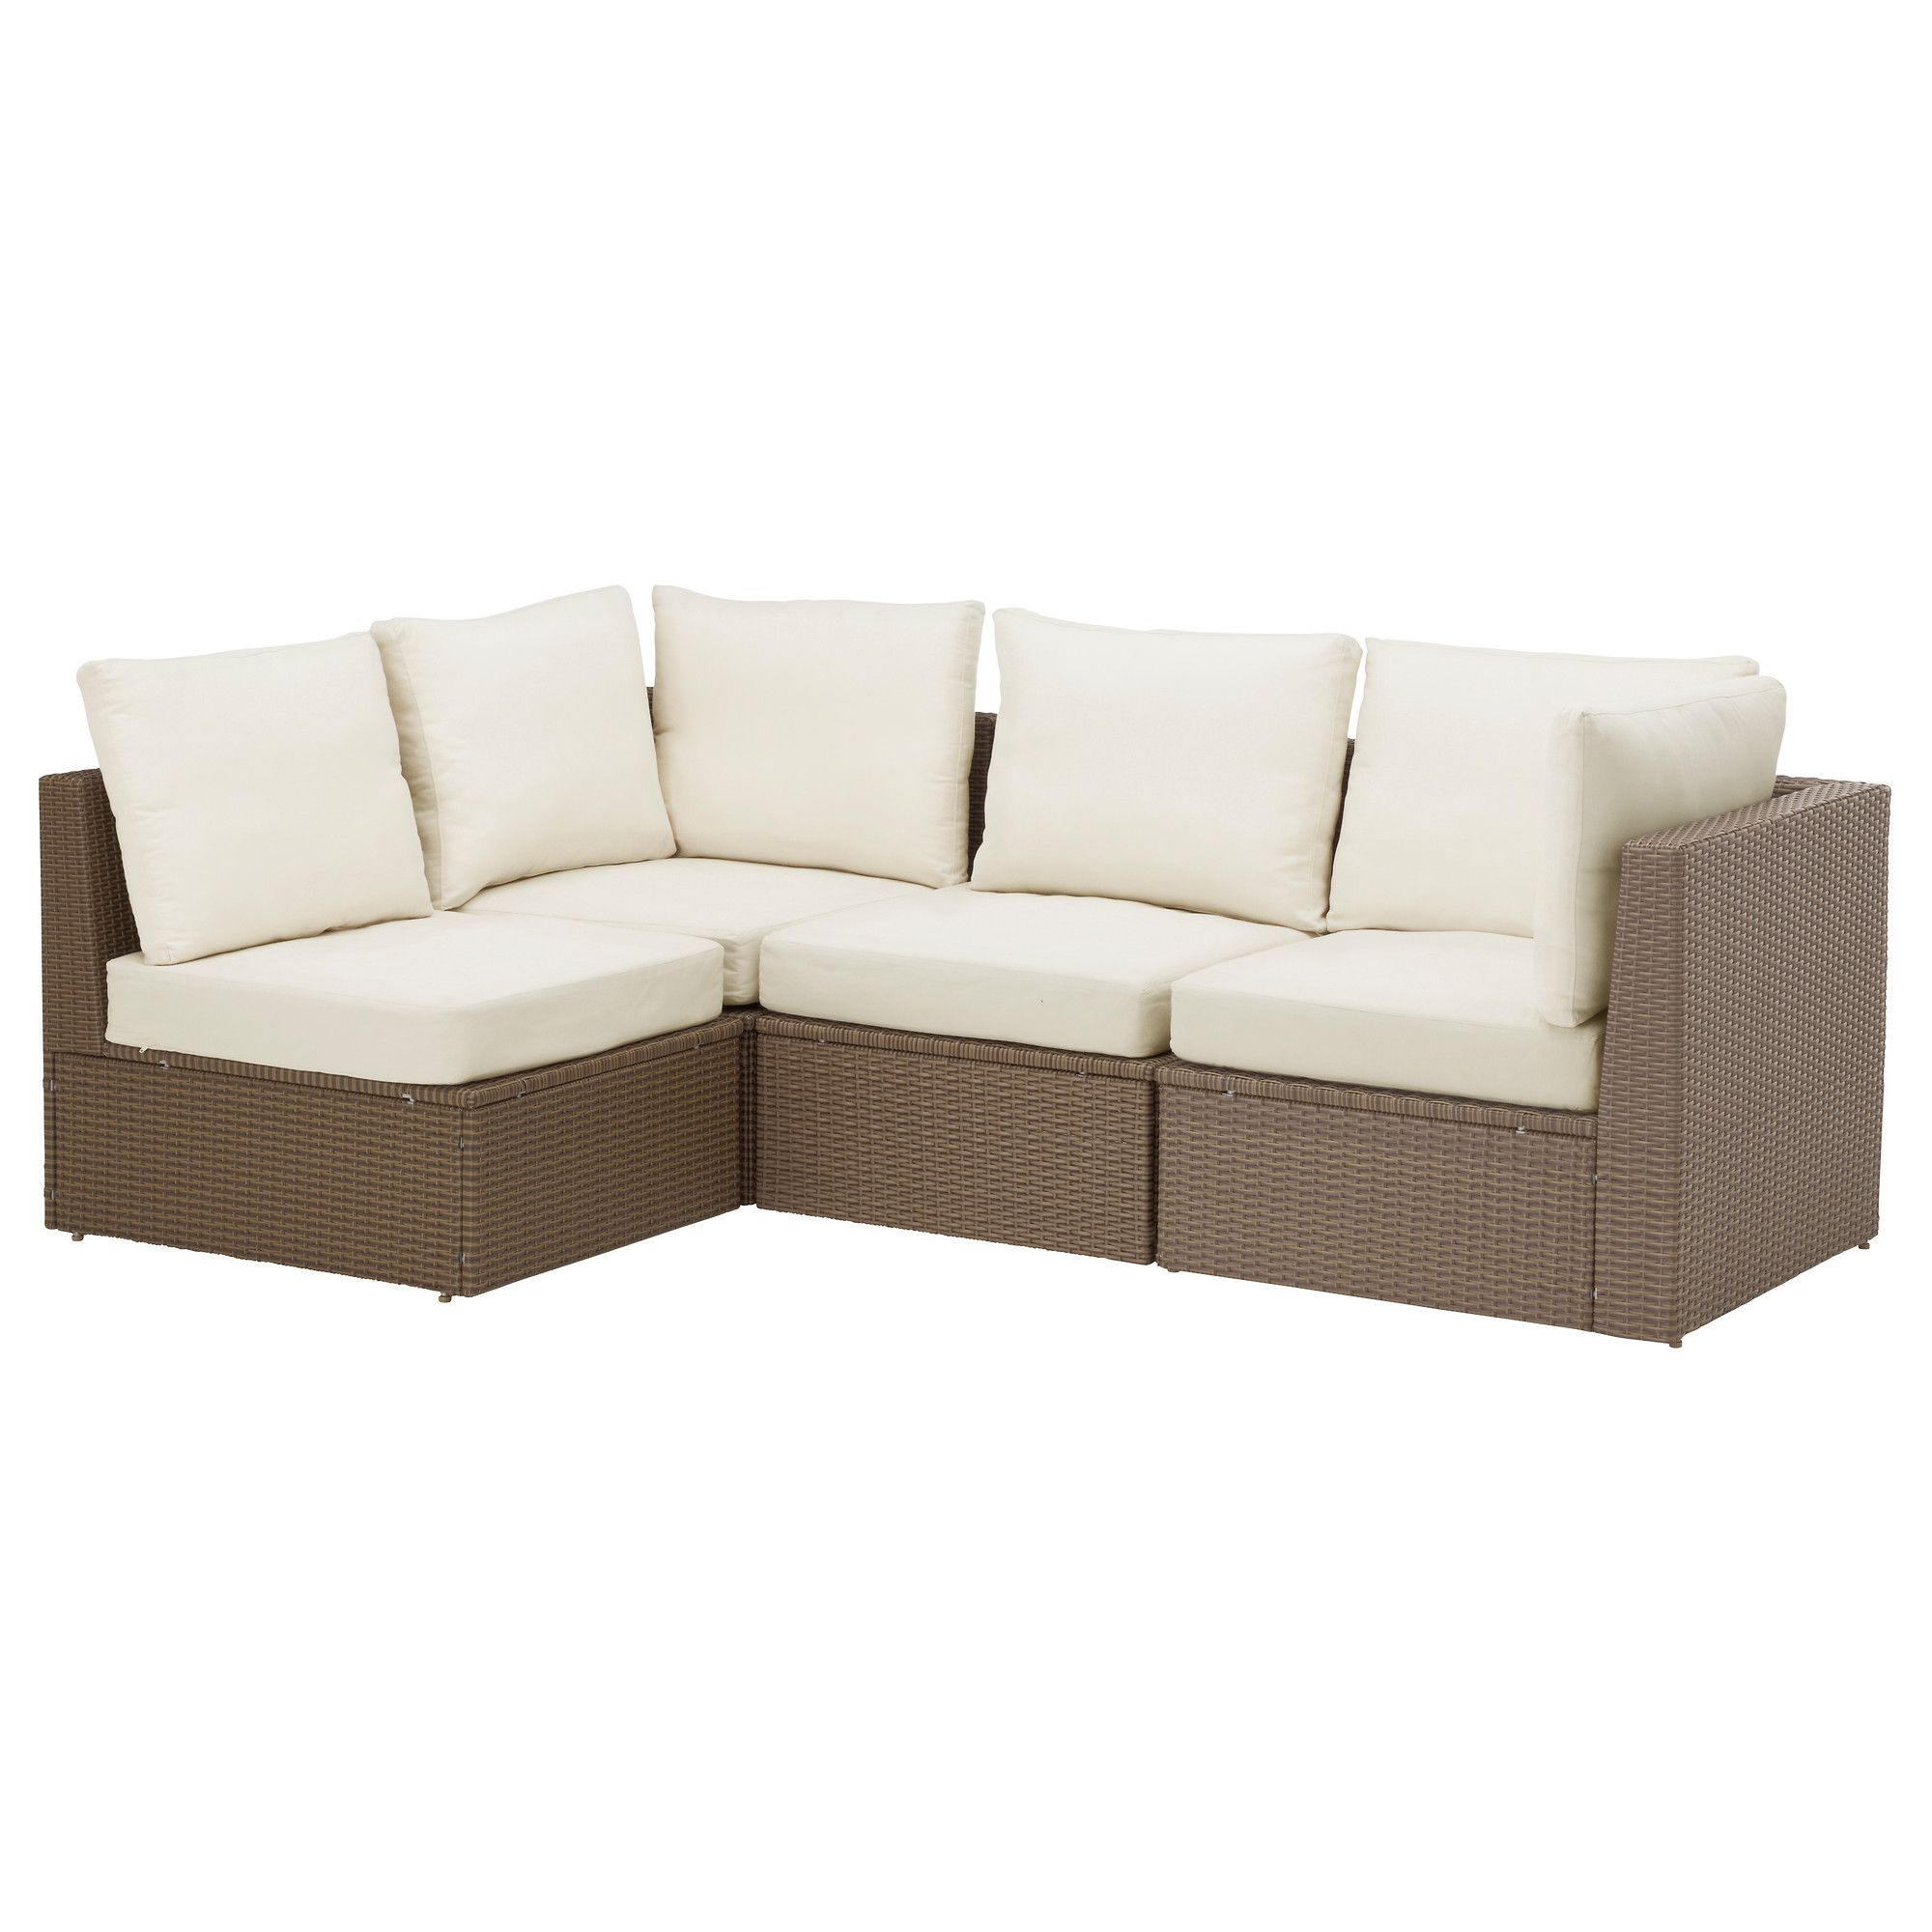 Arholma Sofa Combination Ikea 550 For Across From The